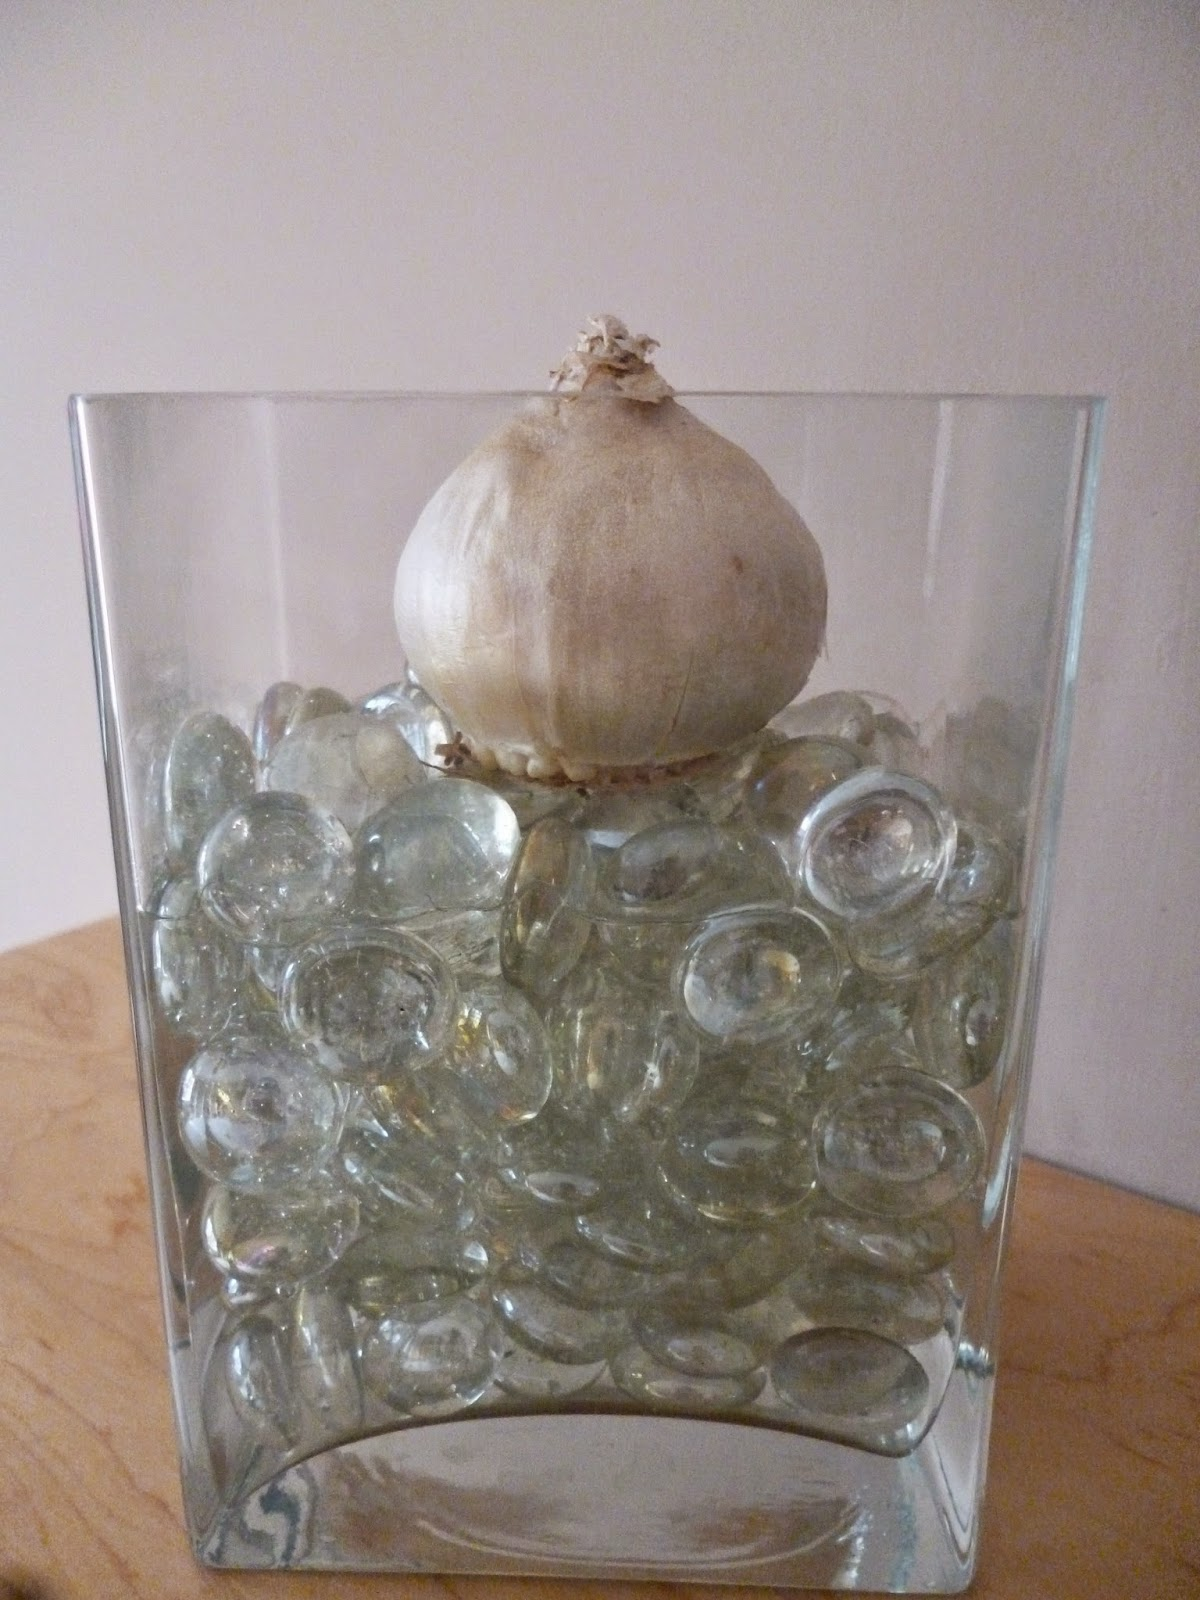 Planting hyacinths for christmas make your own hyacinth vase how to grow hyacinth bulb vase for christmas reviewsmspy